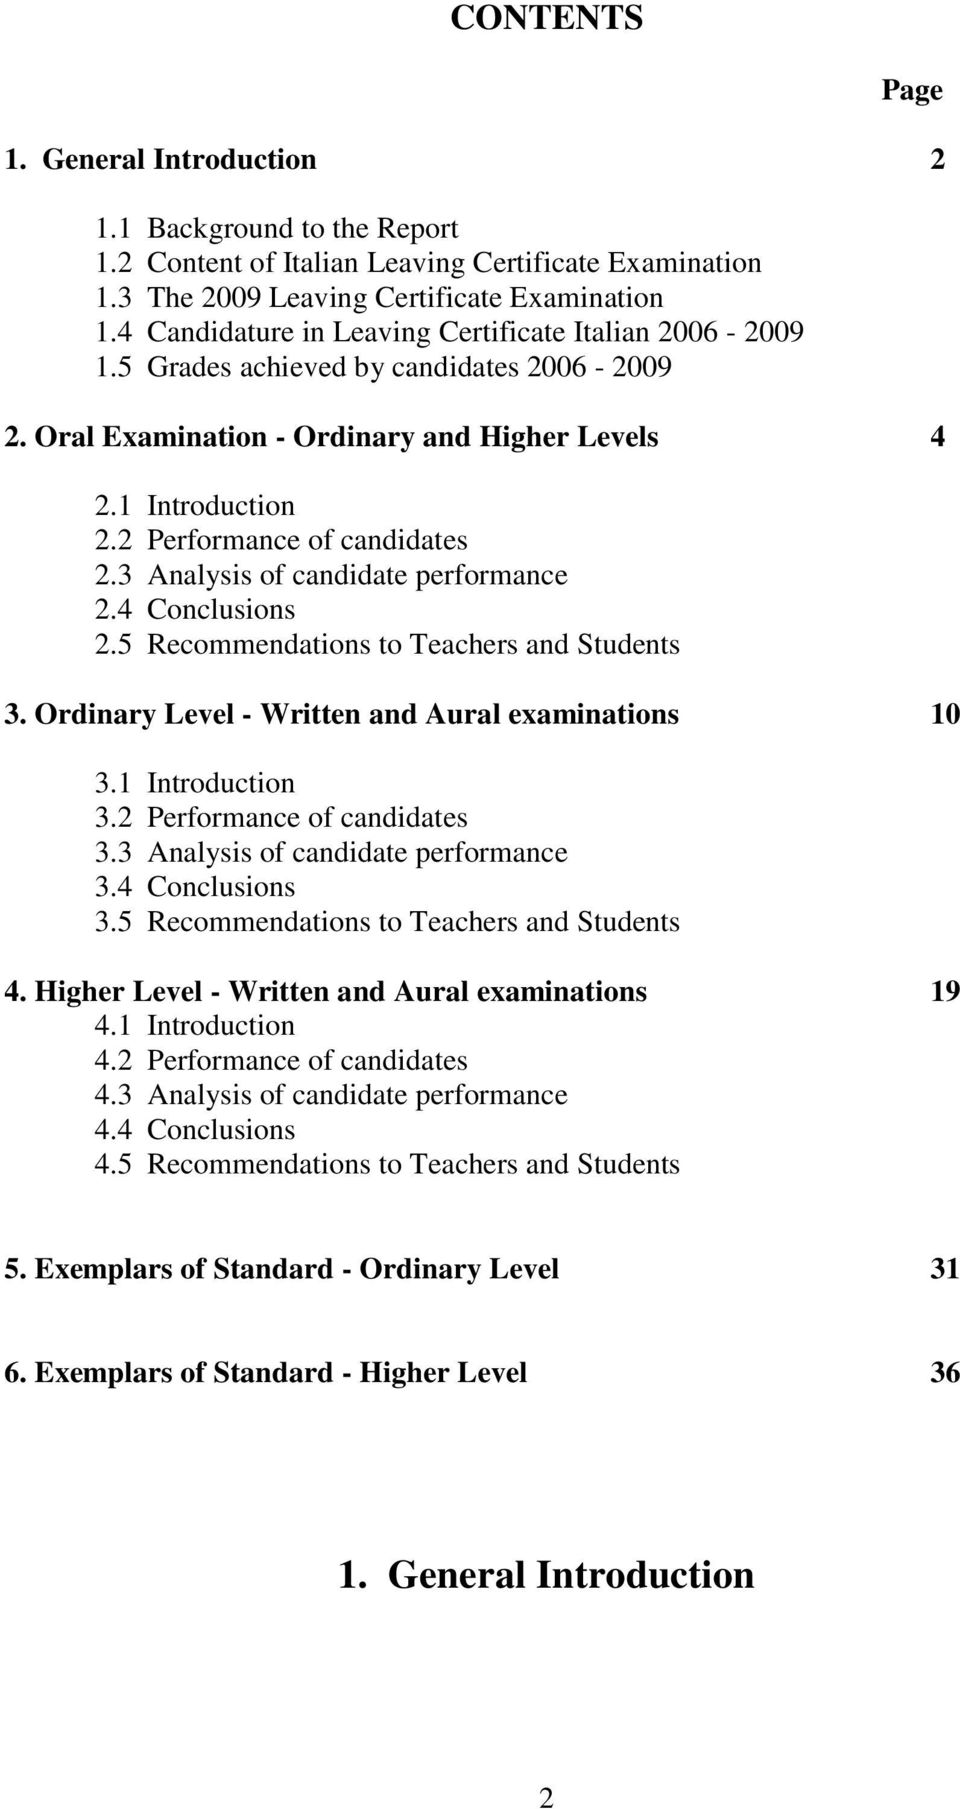 3 Analysis of candidate performance 2.4 Conclusions 2.5 Recommendations to Teachers and Students 3. Ordinary Level - Written and Aural examinations 10 3.1 Introduction 3.2 Performance of candidates 3.